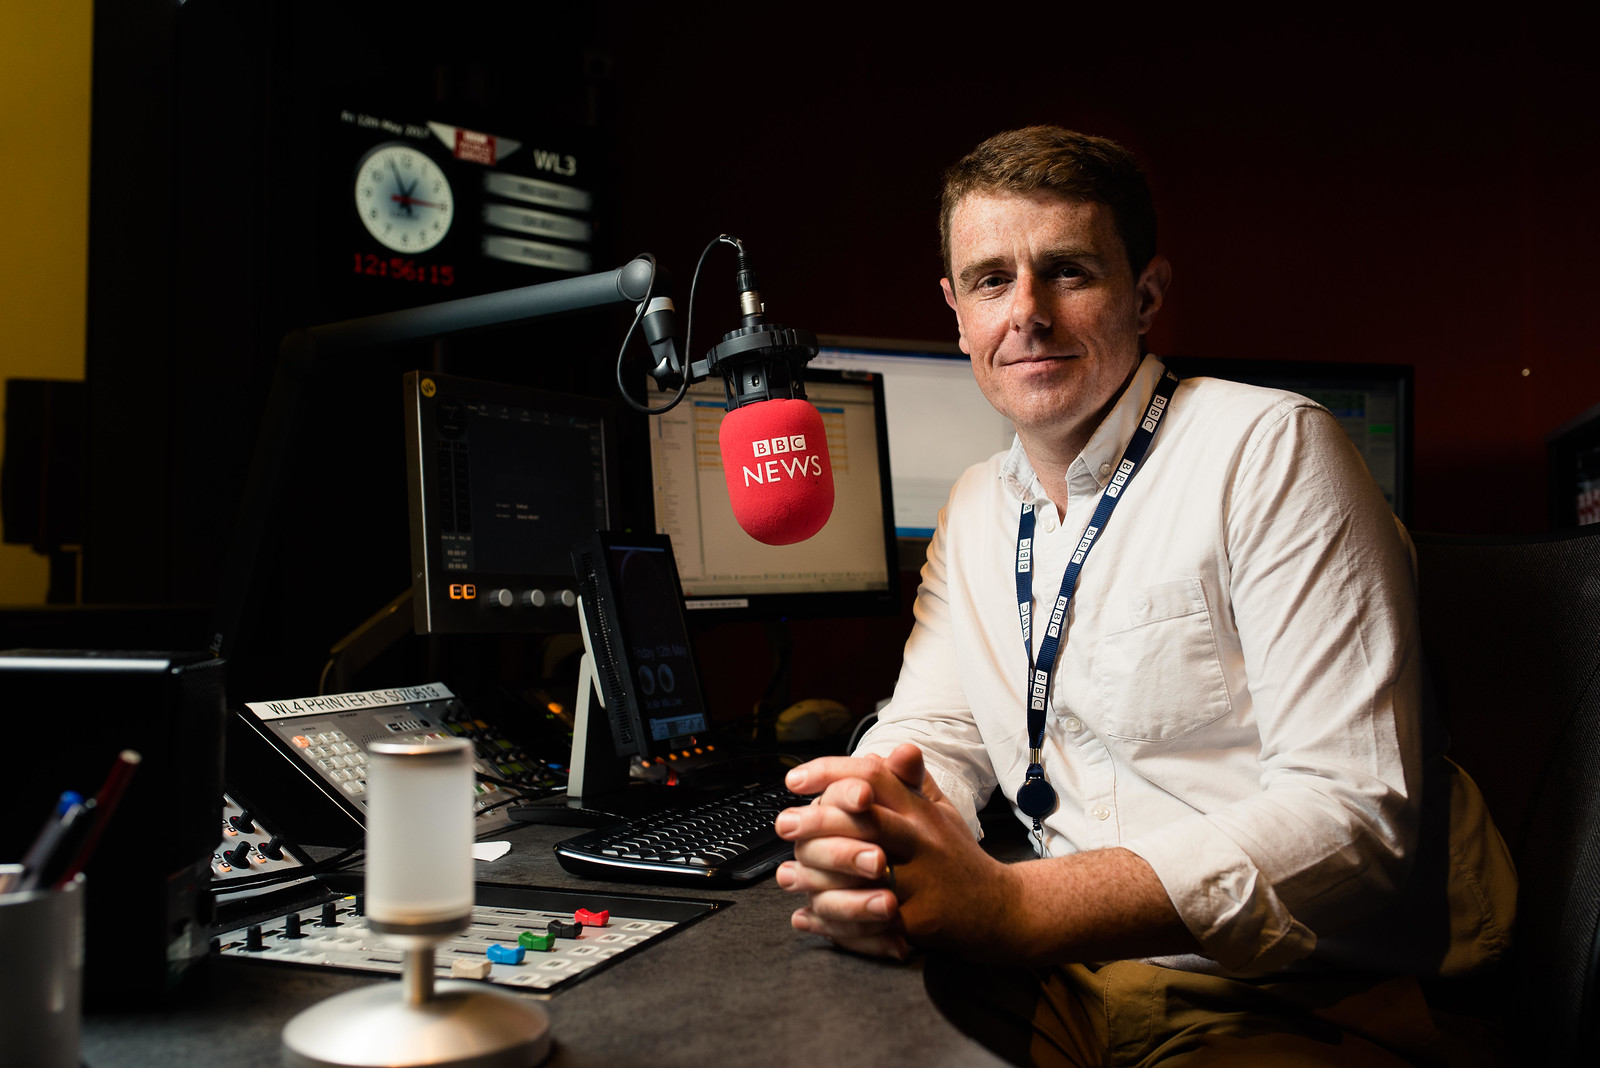 Anthony Birchley, BBC Radio Presenter